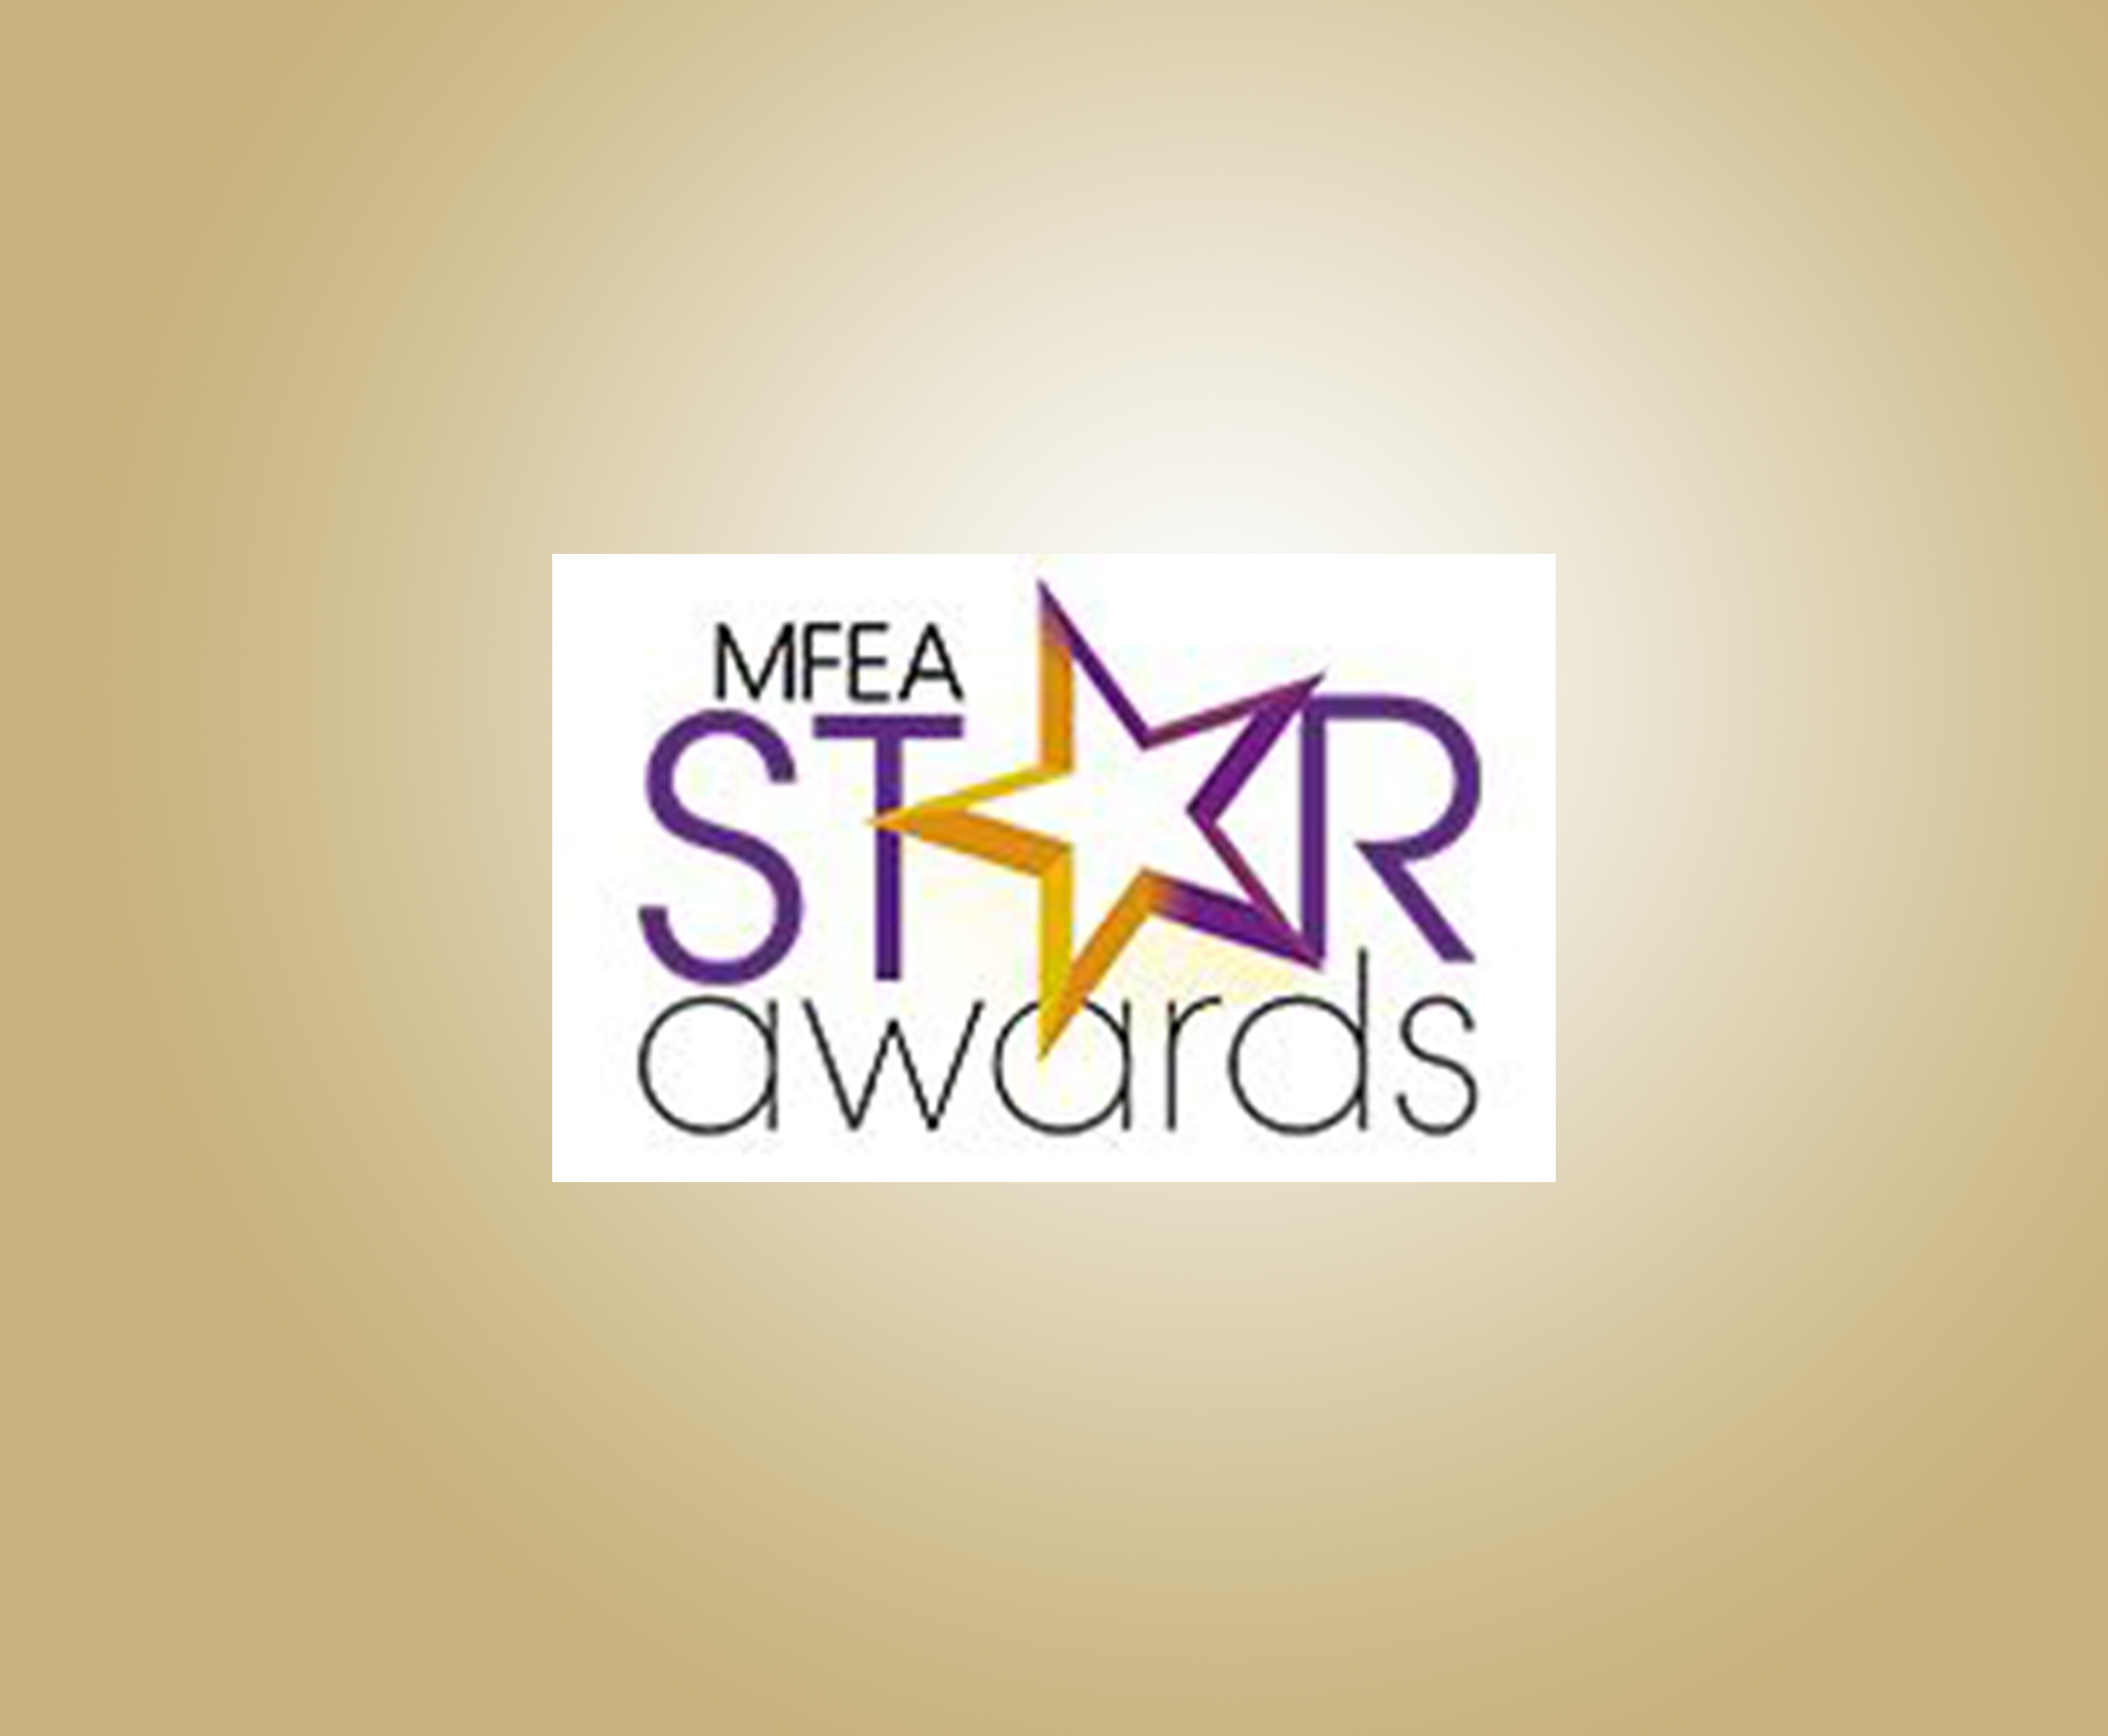 MFEA Star Award: Advisor Outreach Campaign